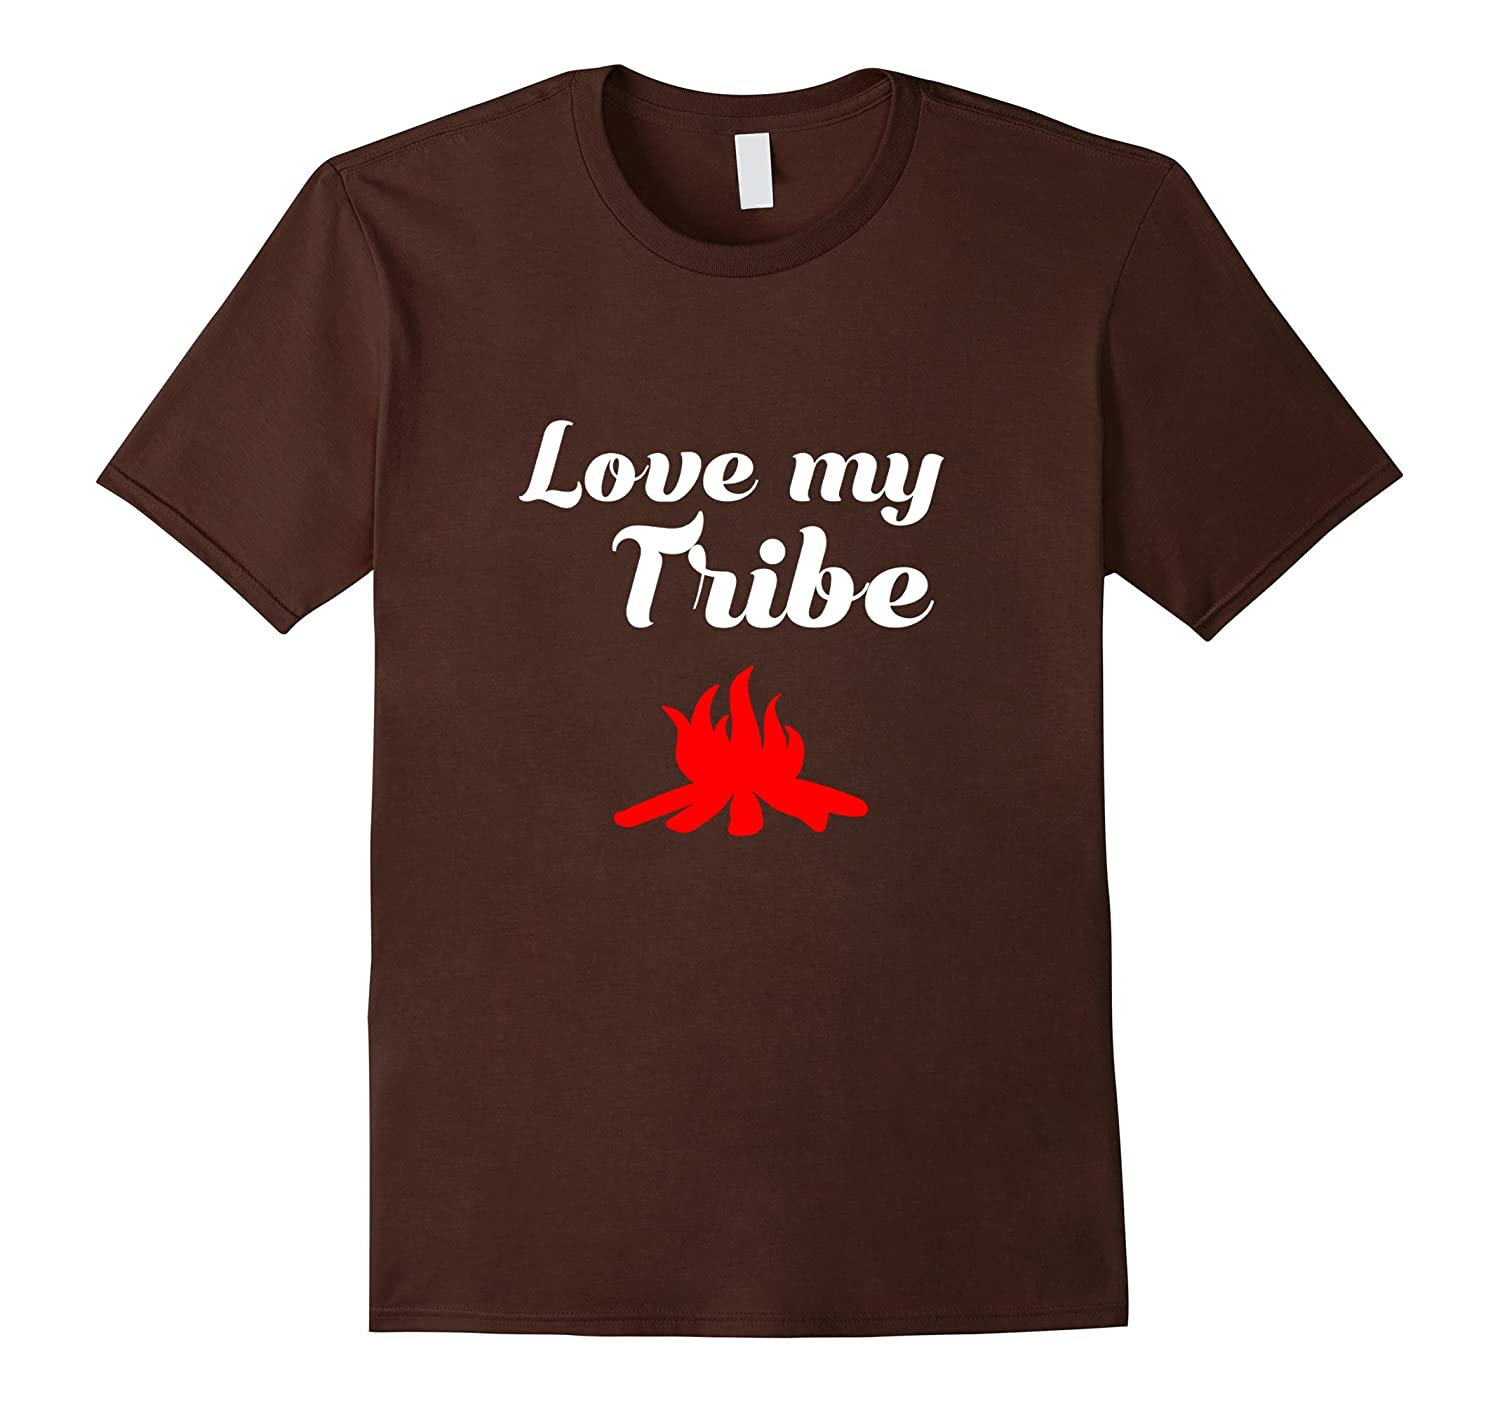 Cool Love My Tribe T-shirt with Fire Perfect Gift for Family-CD